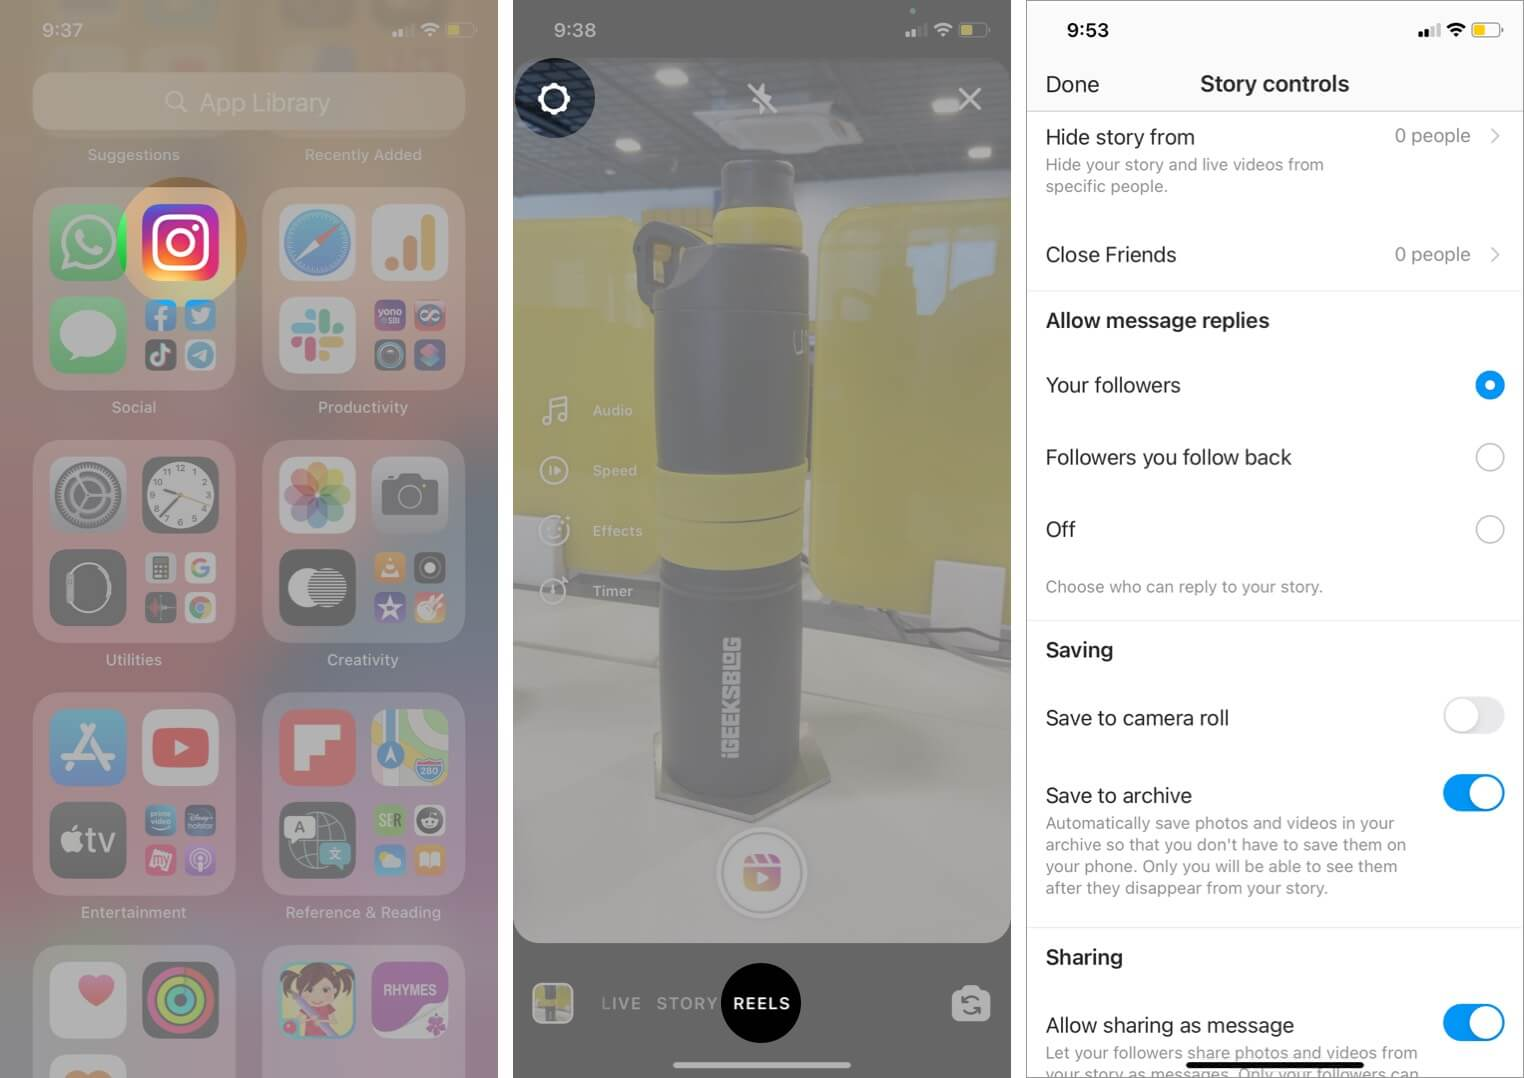 set reels privacy and sharing settings in instagram on iphone